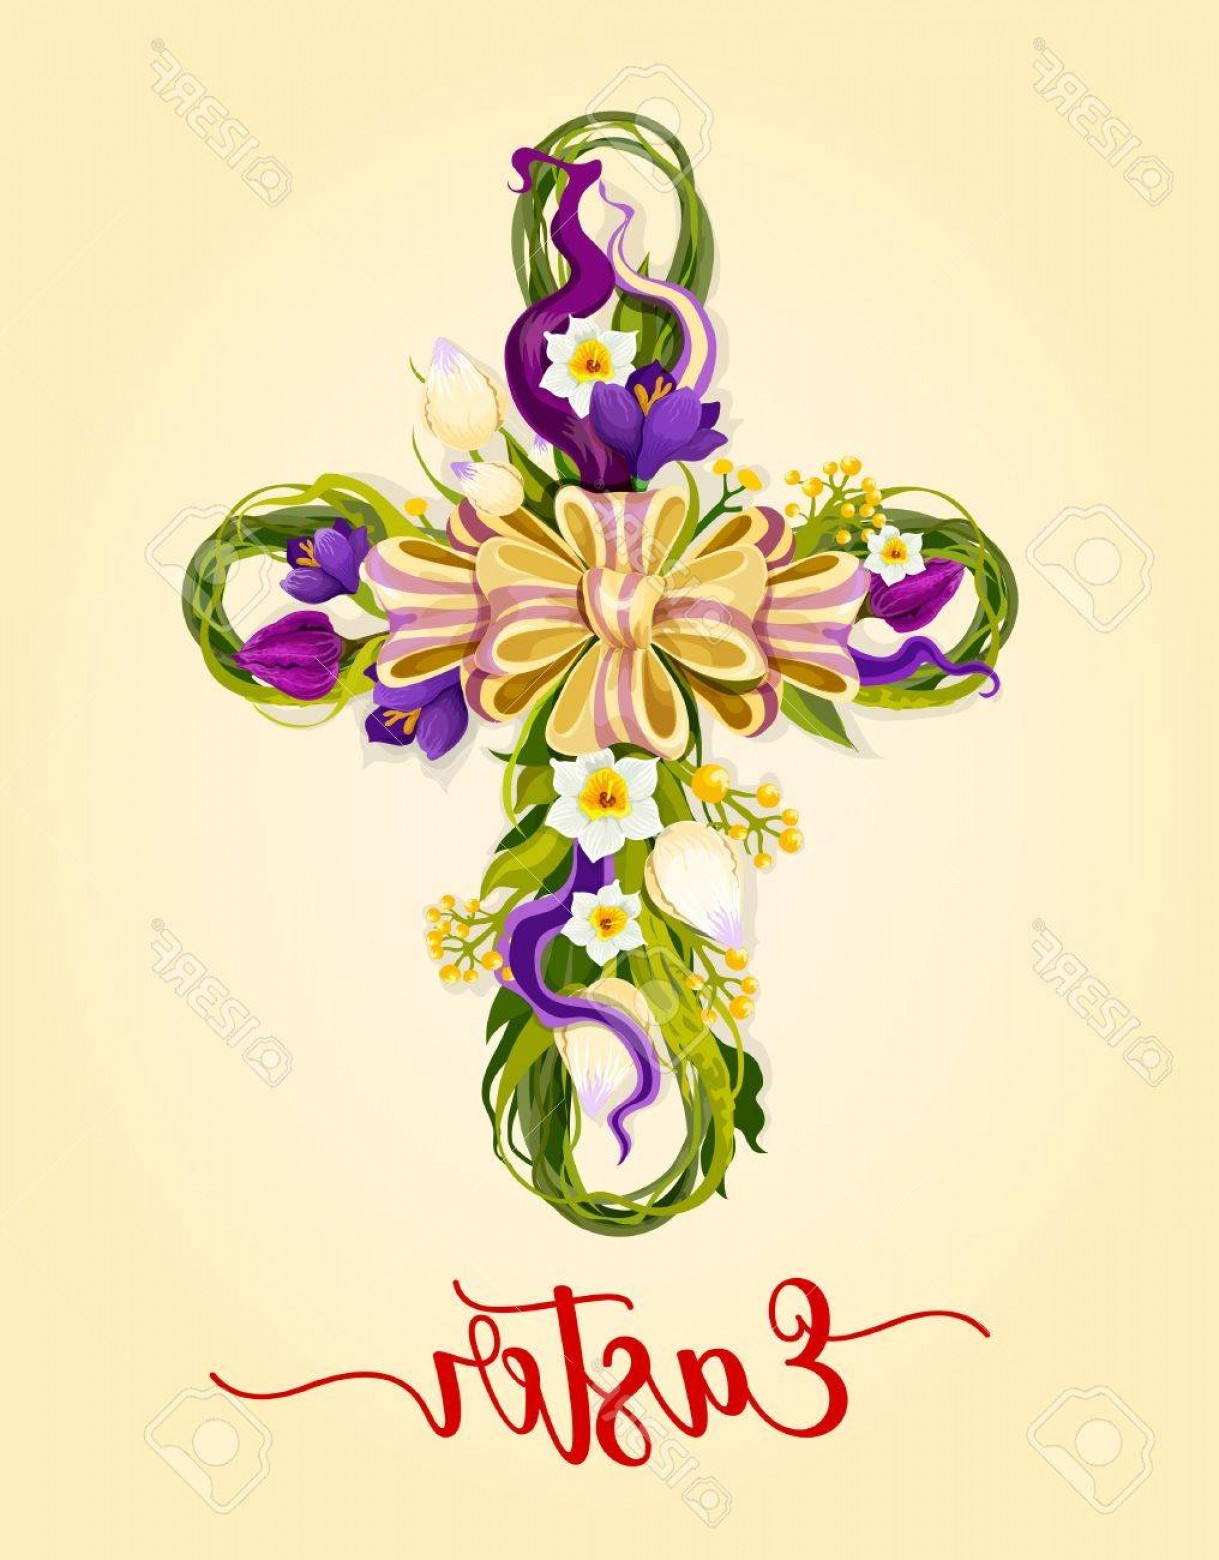 Easter Cross Vector: Photostock Vector Easter Cross With Spring Flowers Greeting Card Flowers Of Tulip Narcissus And Crocus With Green Leav